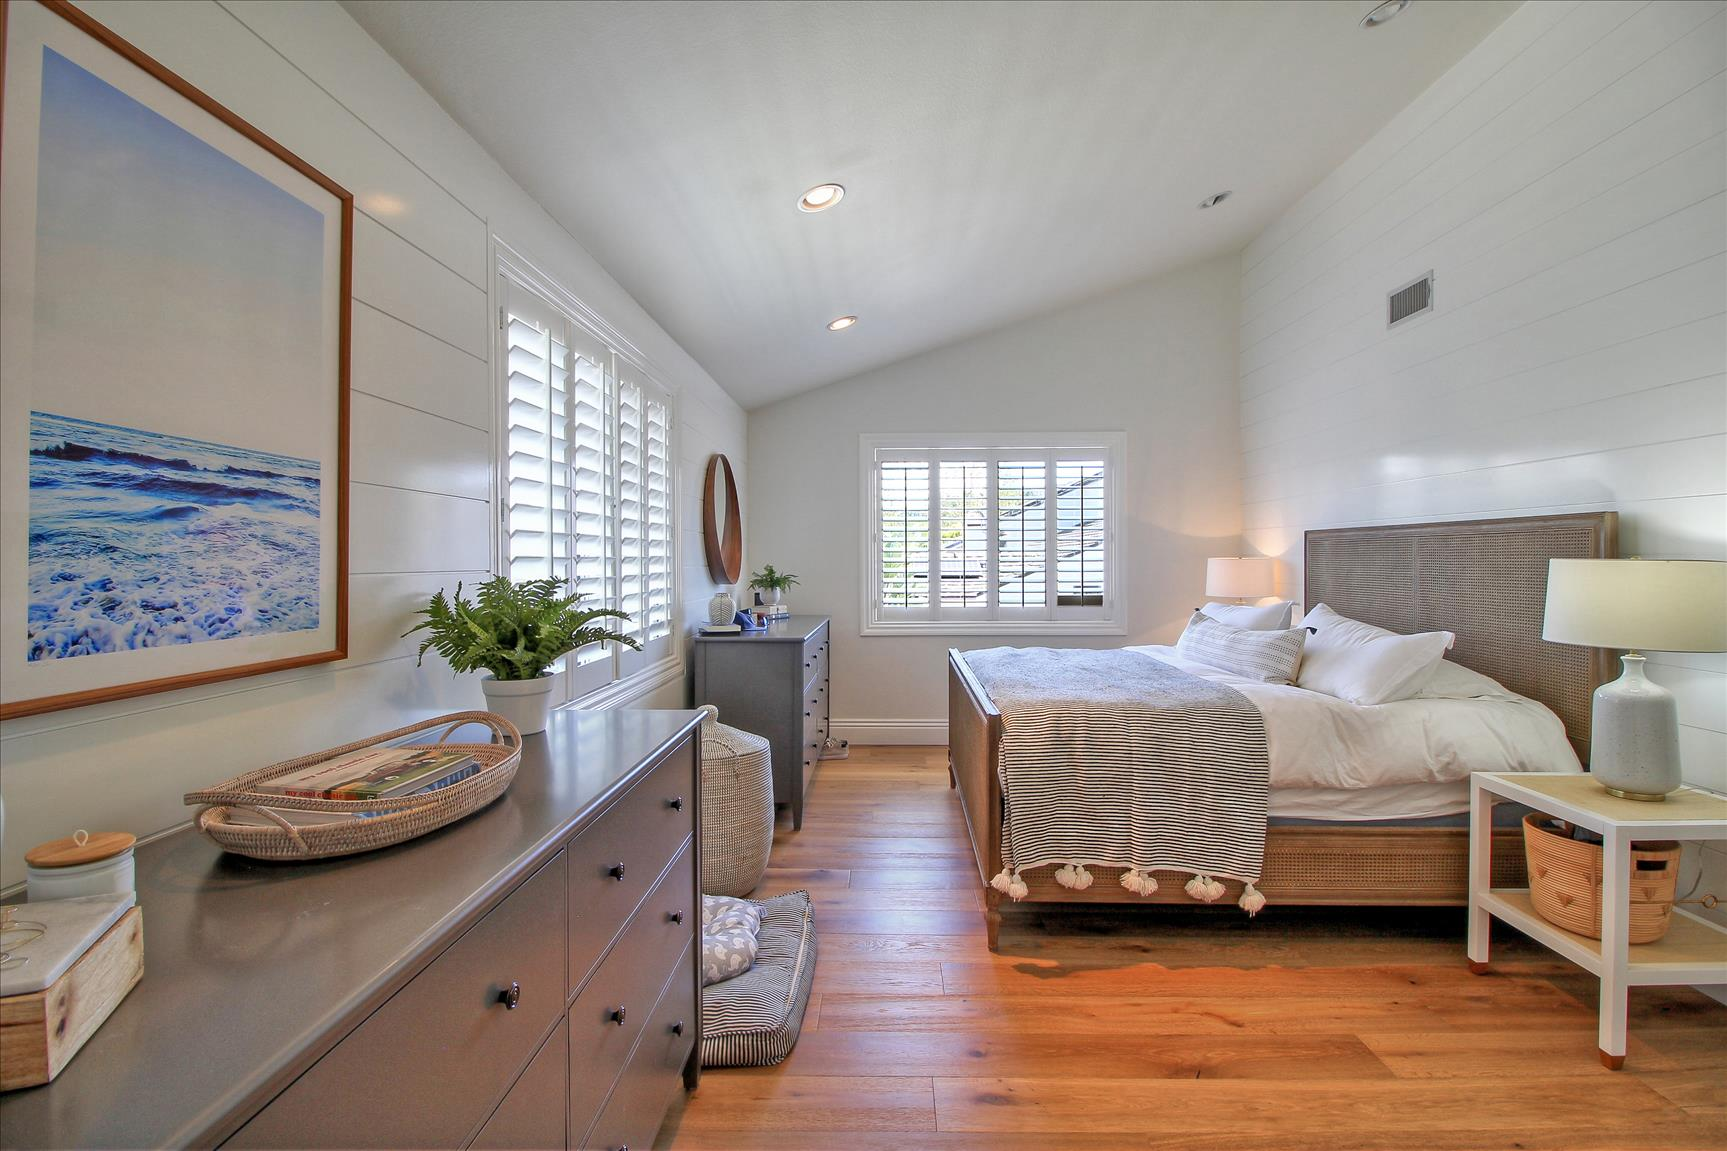 1836 Port Barmouth Pl, Newport Beach, CA  9266035.jpg